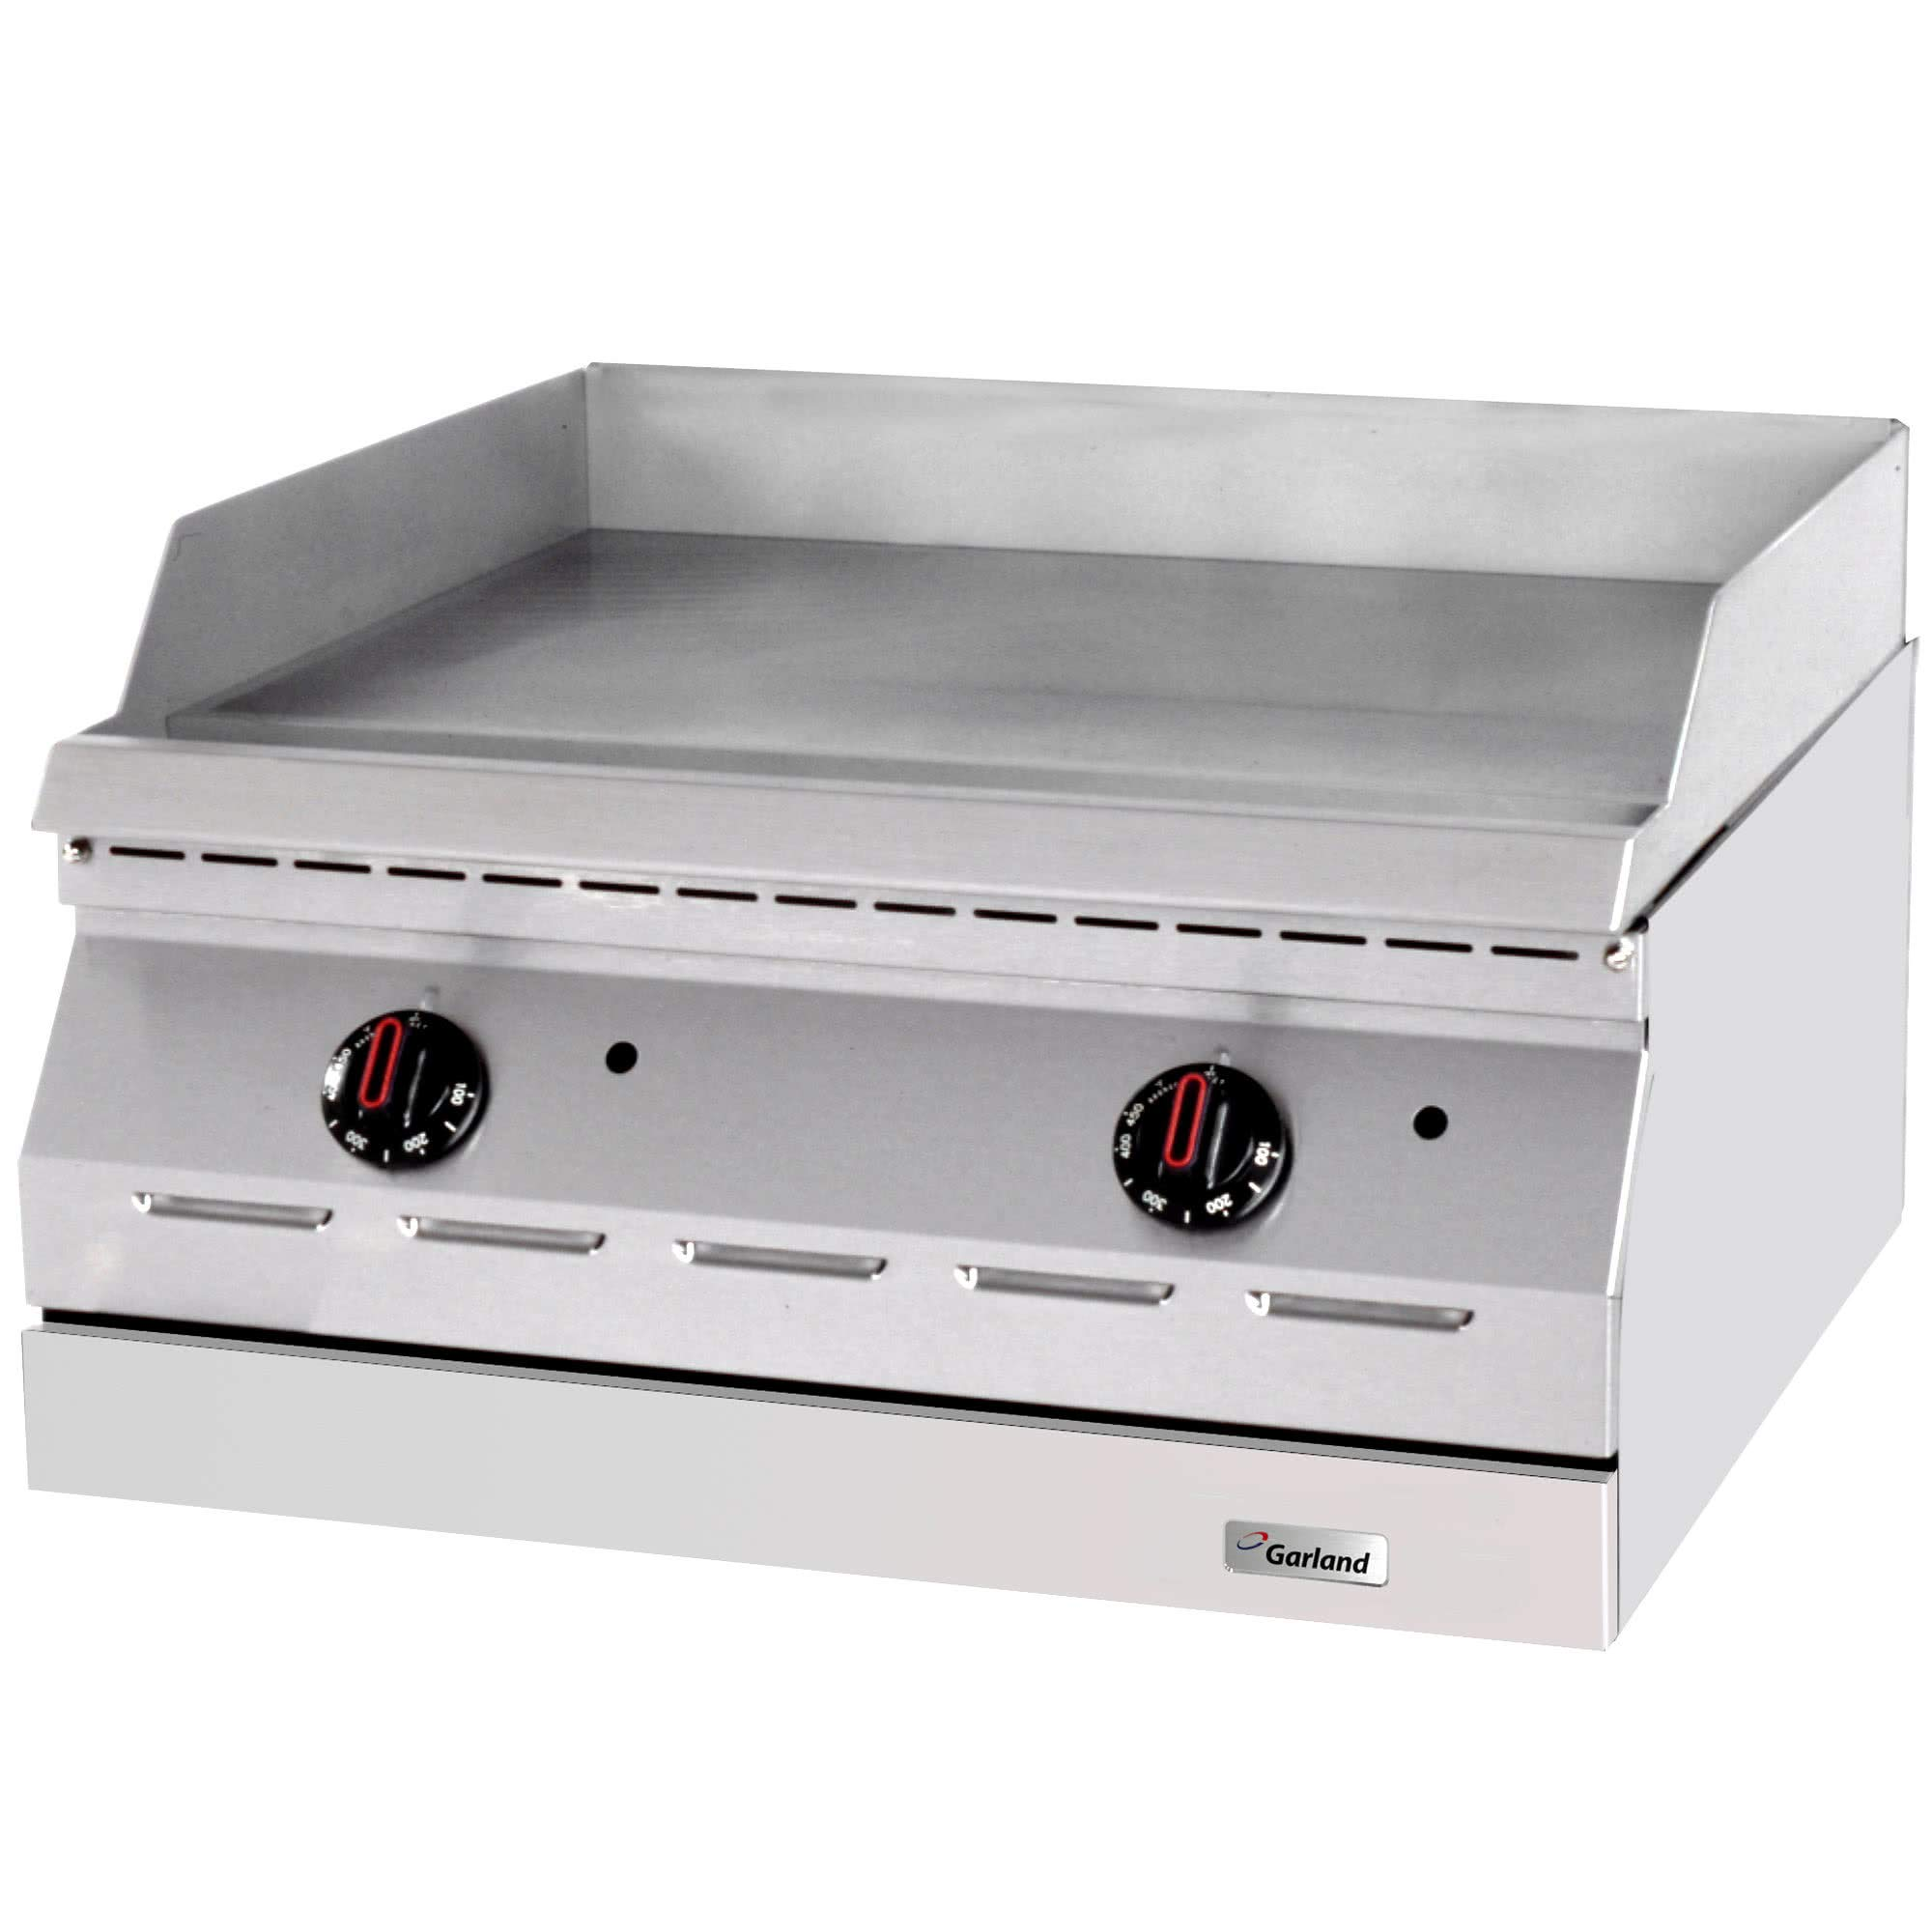 TableTop King ED-36G Designer Series 36'' Electric Countertop Griddle - 208V, 1 Phase, 10.1 kW by TableTop King